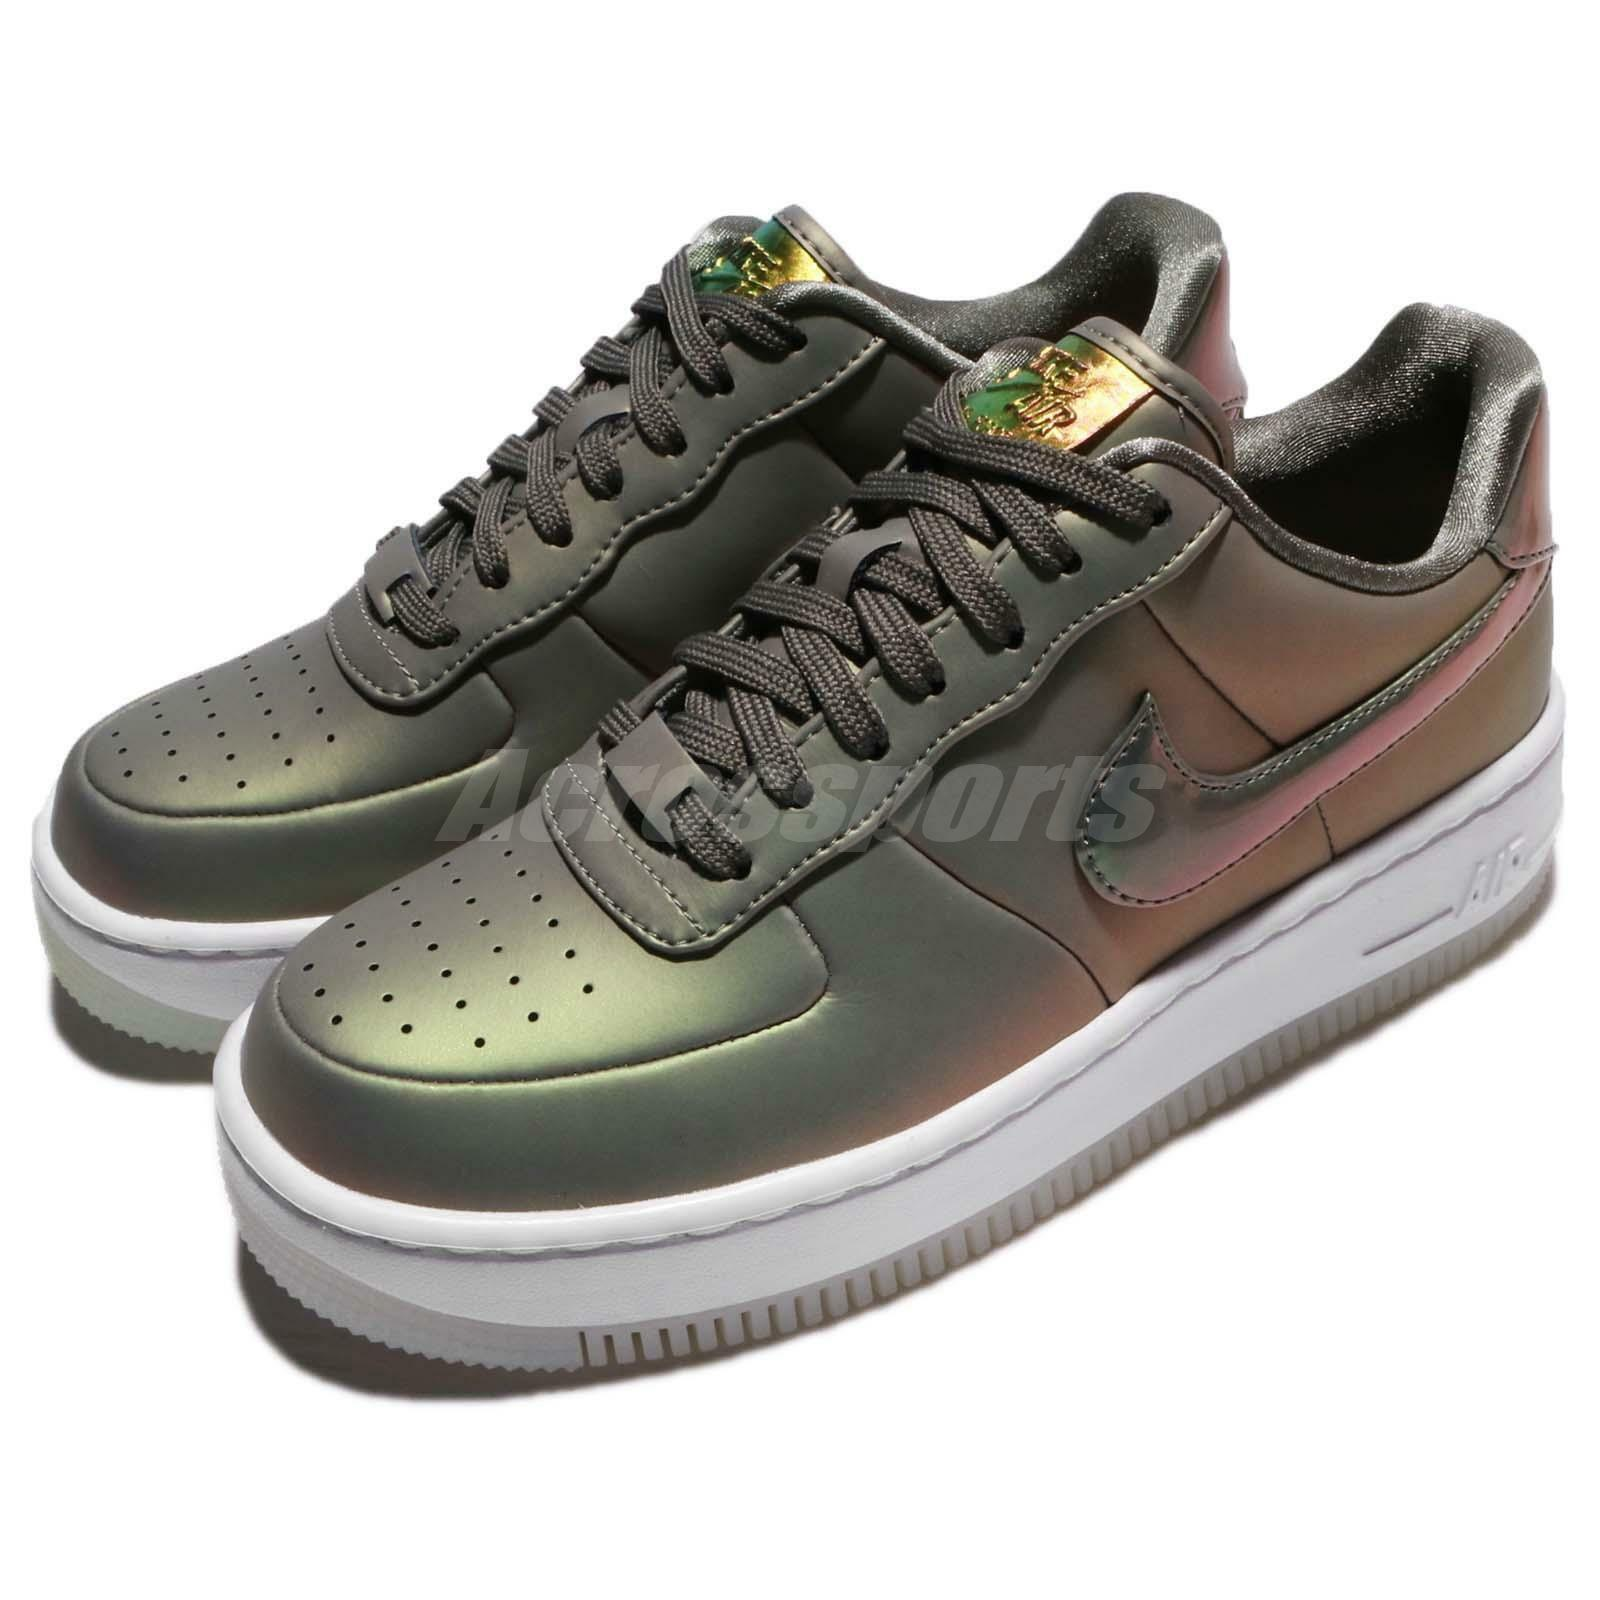 Nike Wmns AF1 Upstep 35 35 35   QS Air Force 1 One Low Women shoes Sneakers Pick 1 5c1fc4